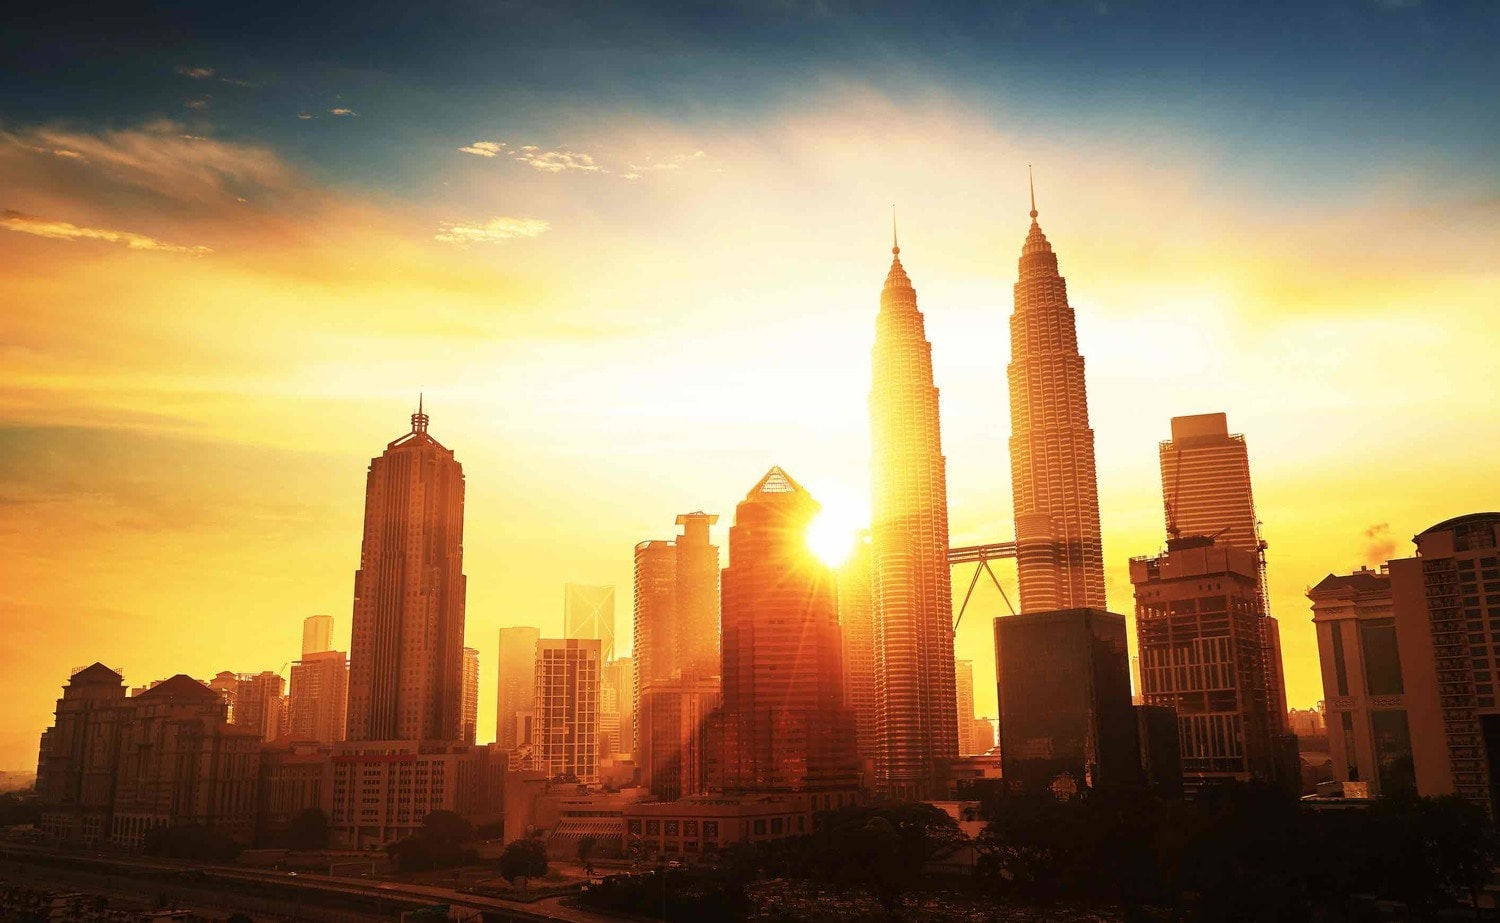 Malaysia considers restricting foreign property purchases | The Thaiger